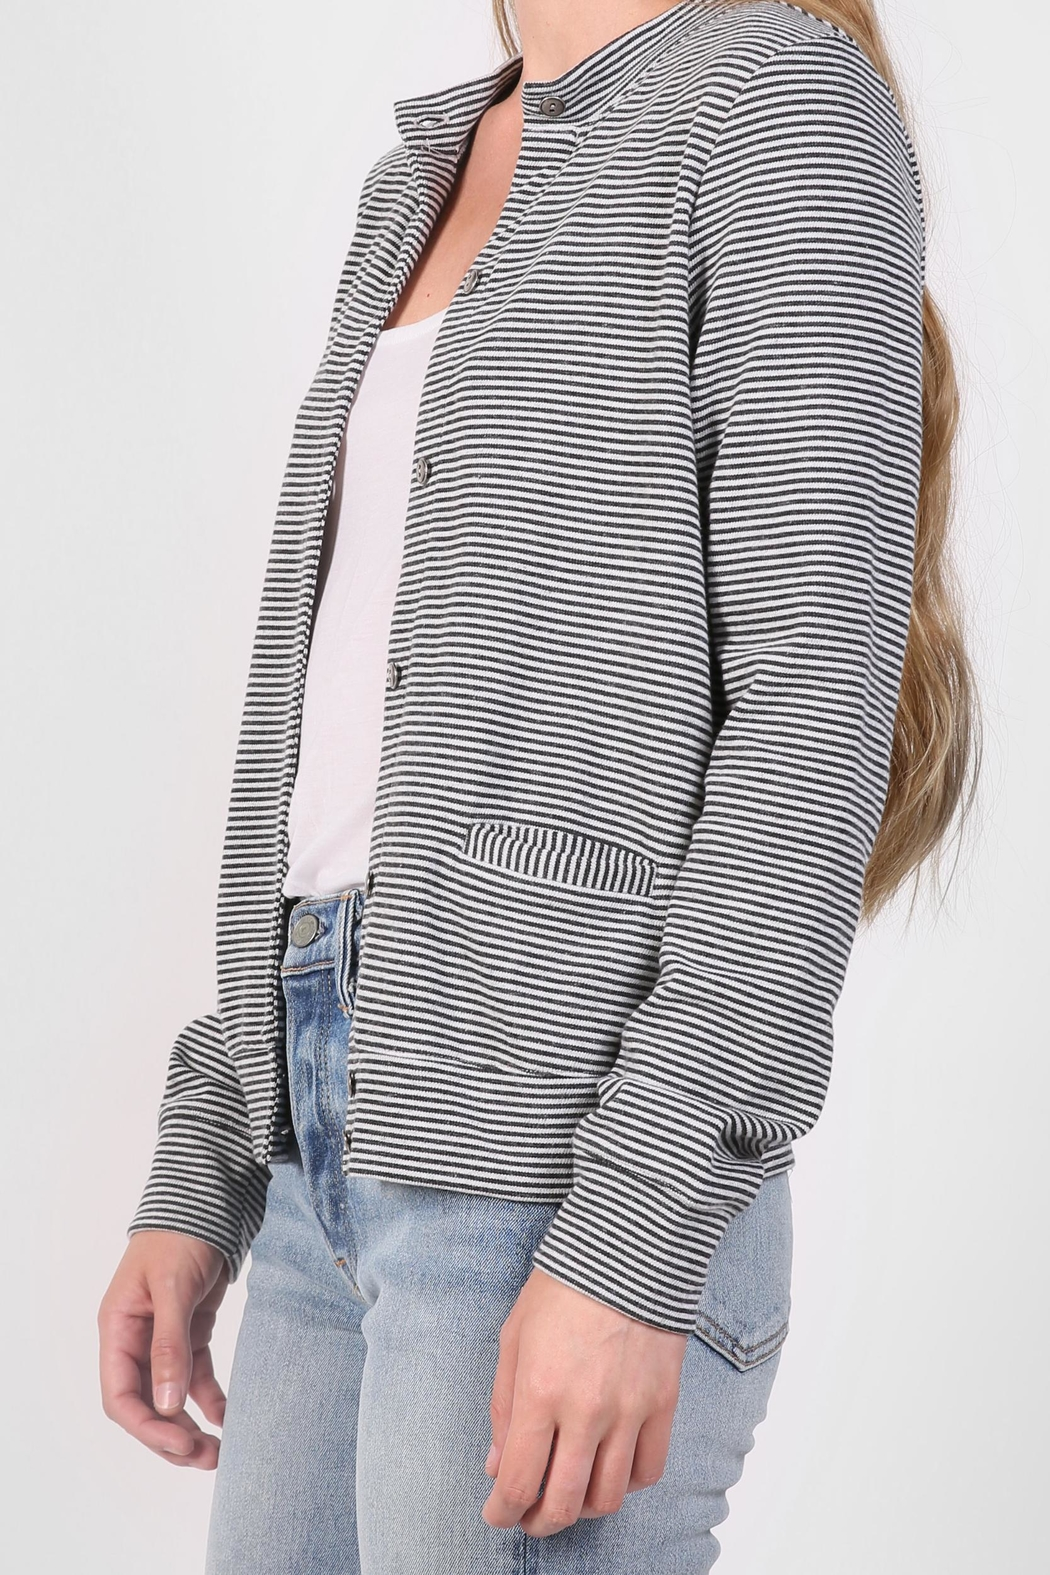 The Lady & The Sailor Striped Cardigan Sweater - Front Full Image